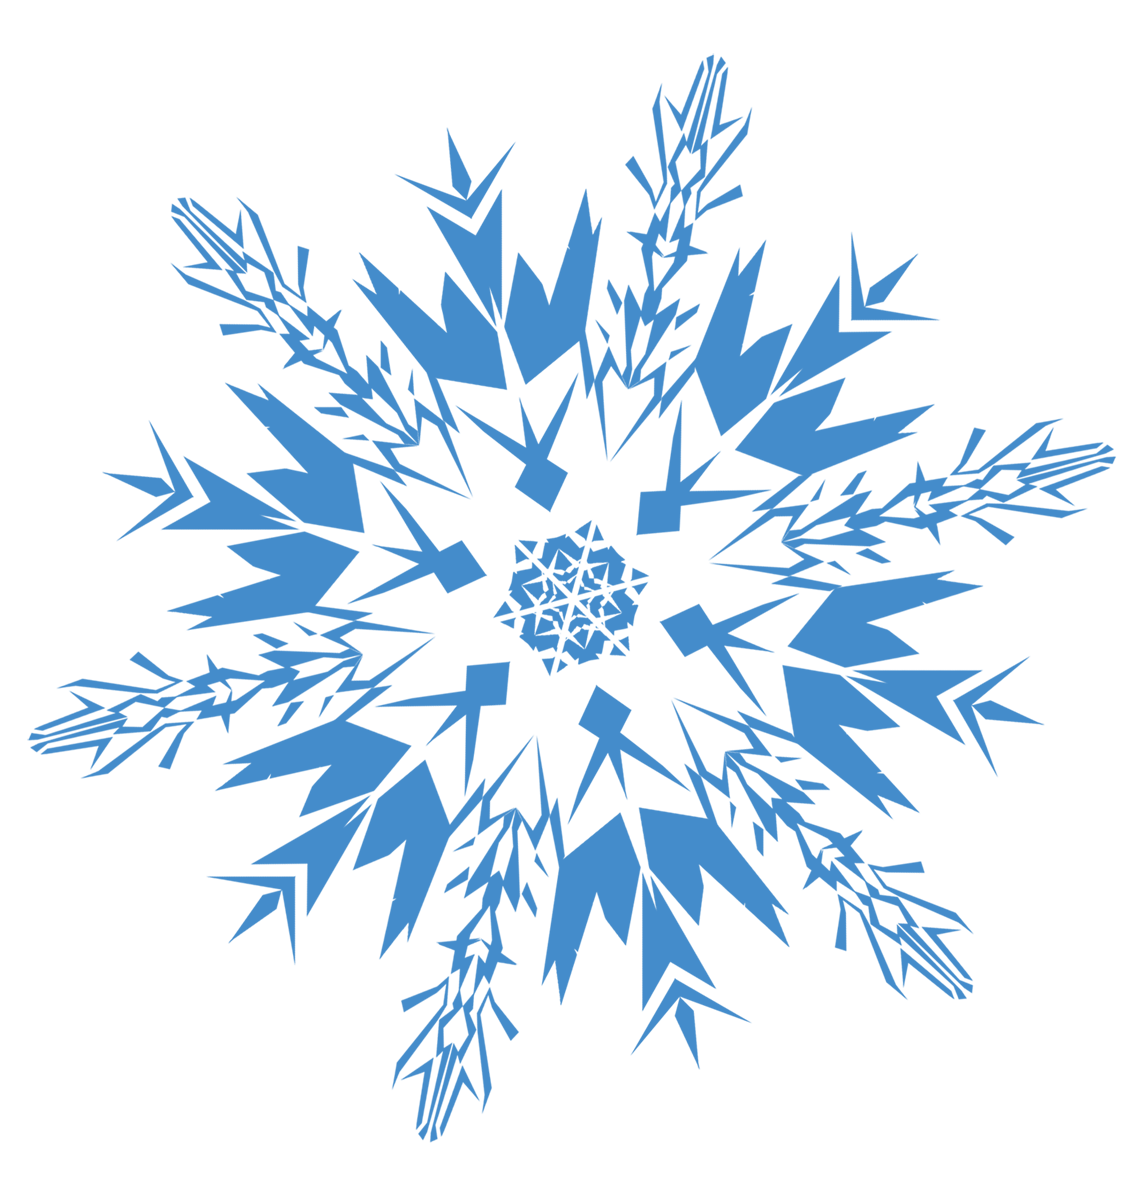 Snowflakes png clipart. Snowflake hd transparent images